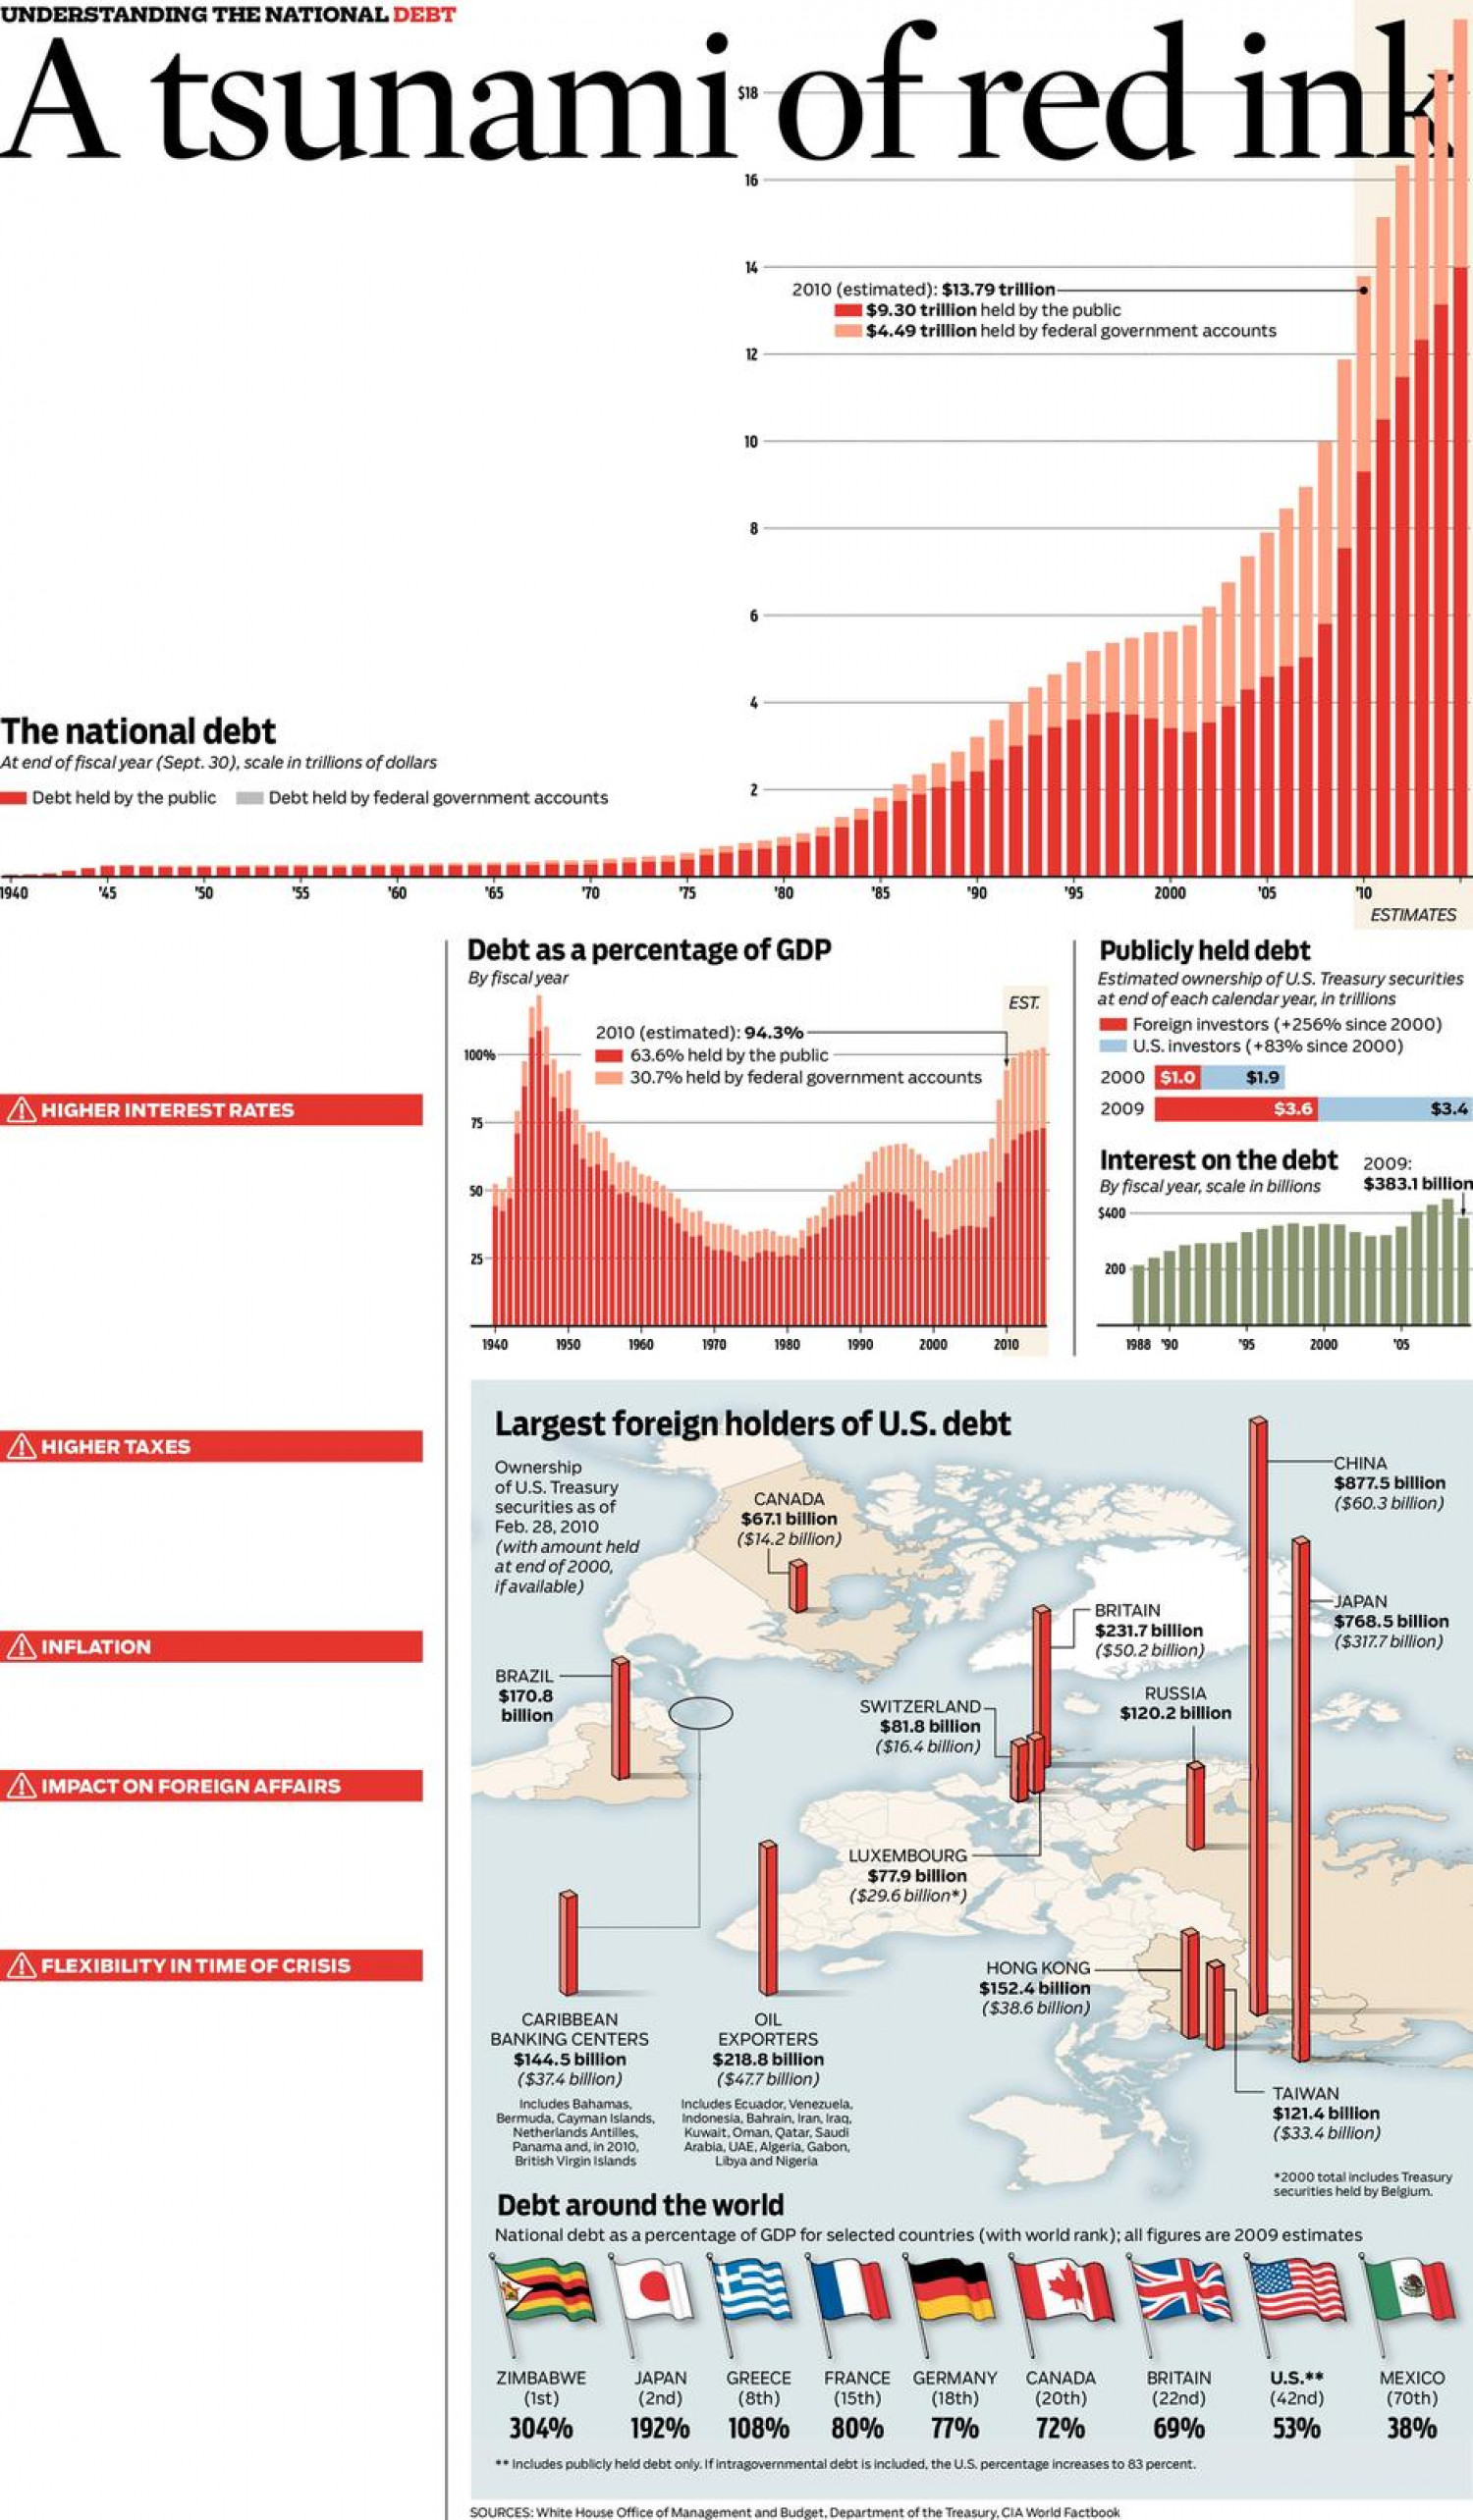 A Tsunami of Red Ink Infographic